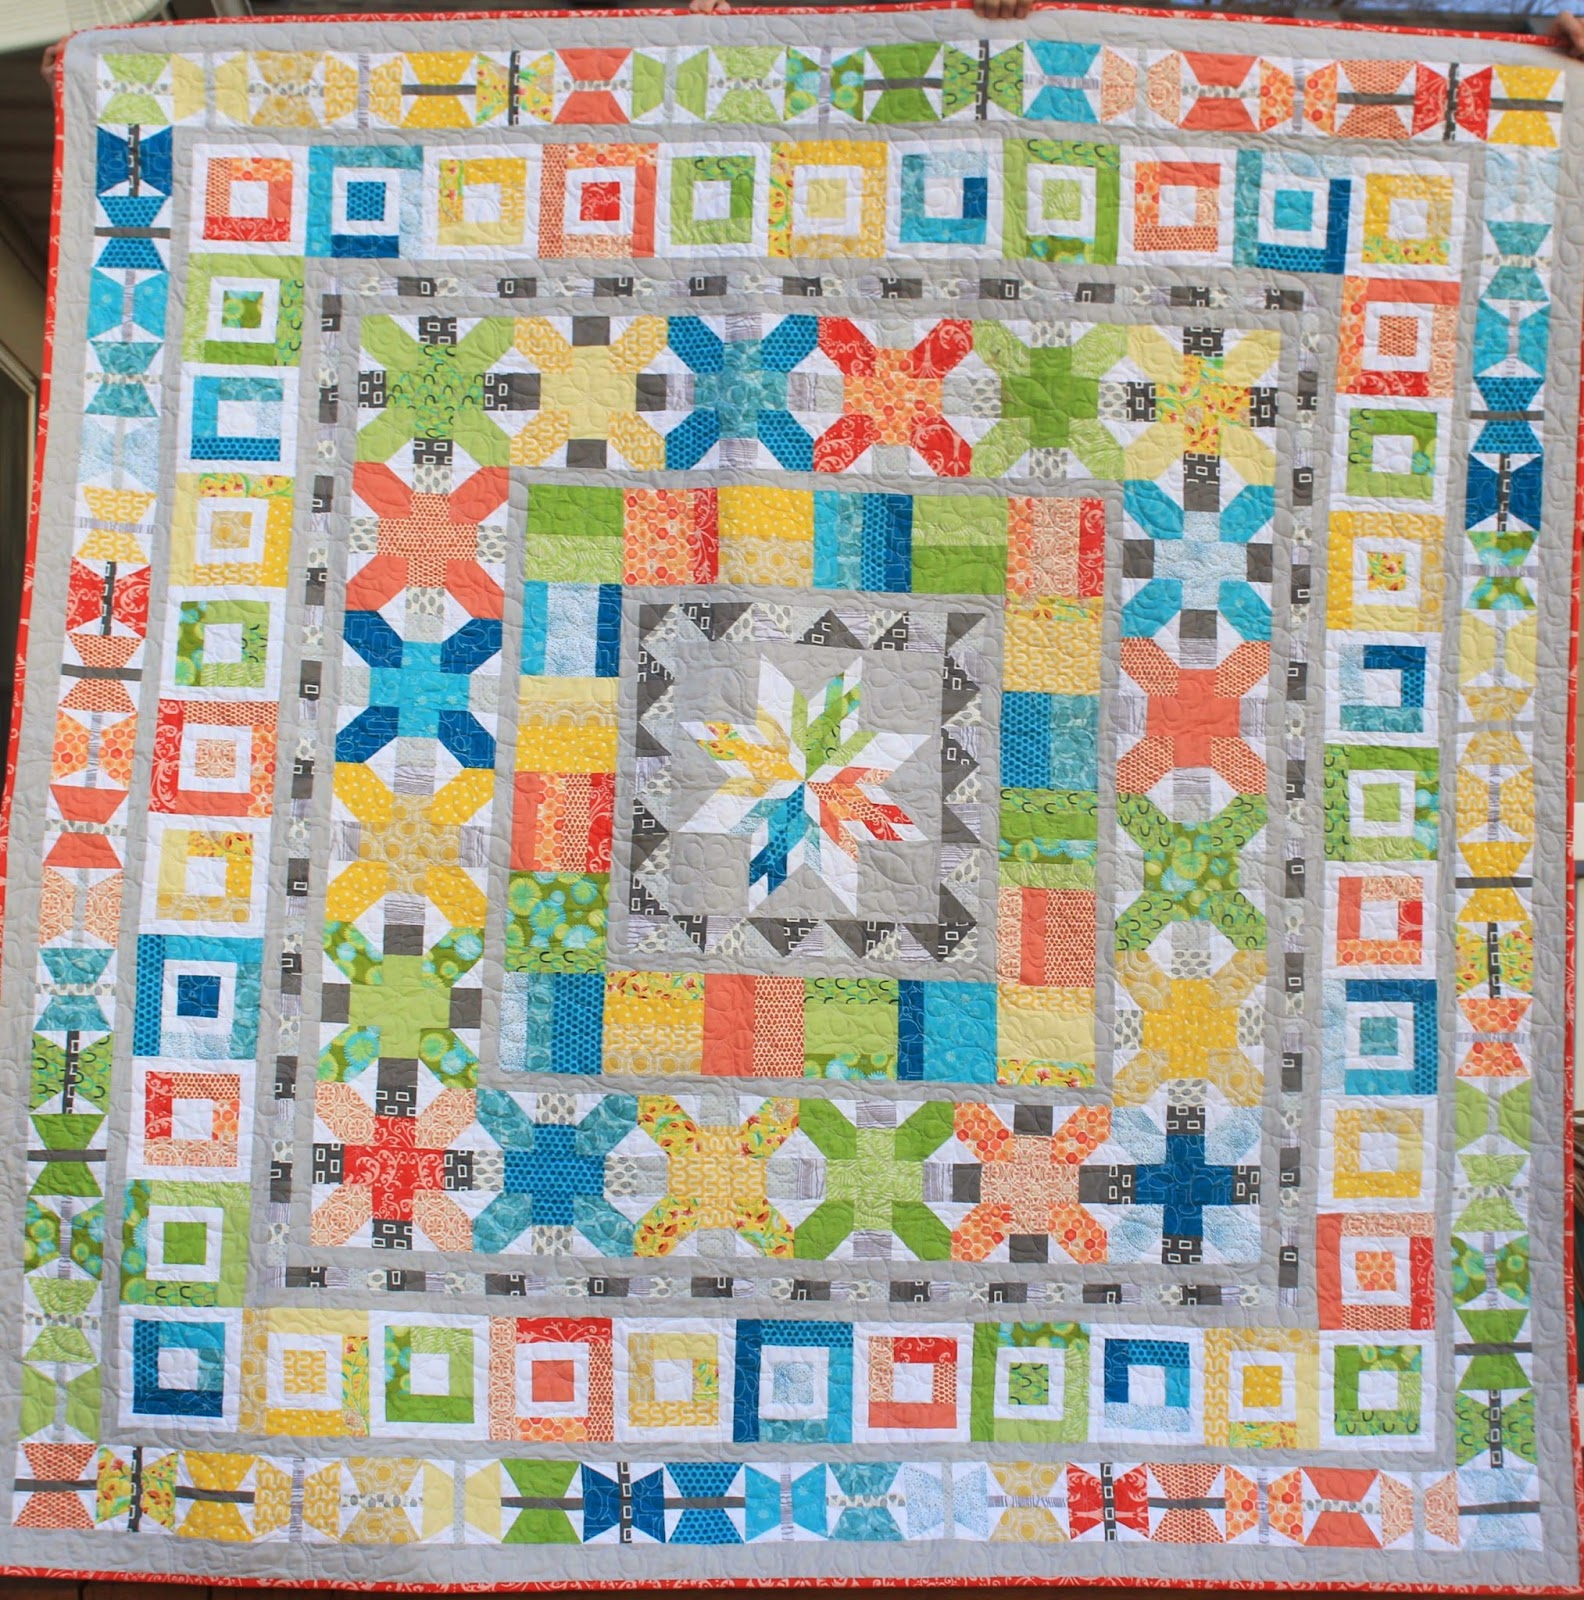 beth modern medallion com quilt zeller dp ryan to books workbook projects vassalo mix make match the amazon janice